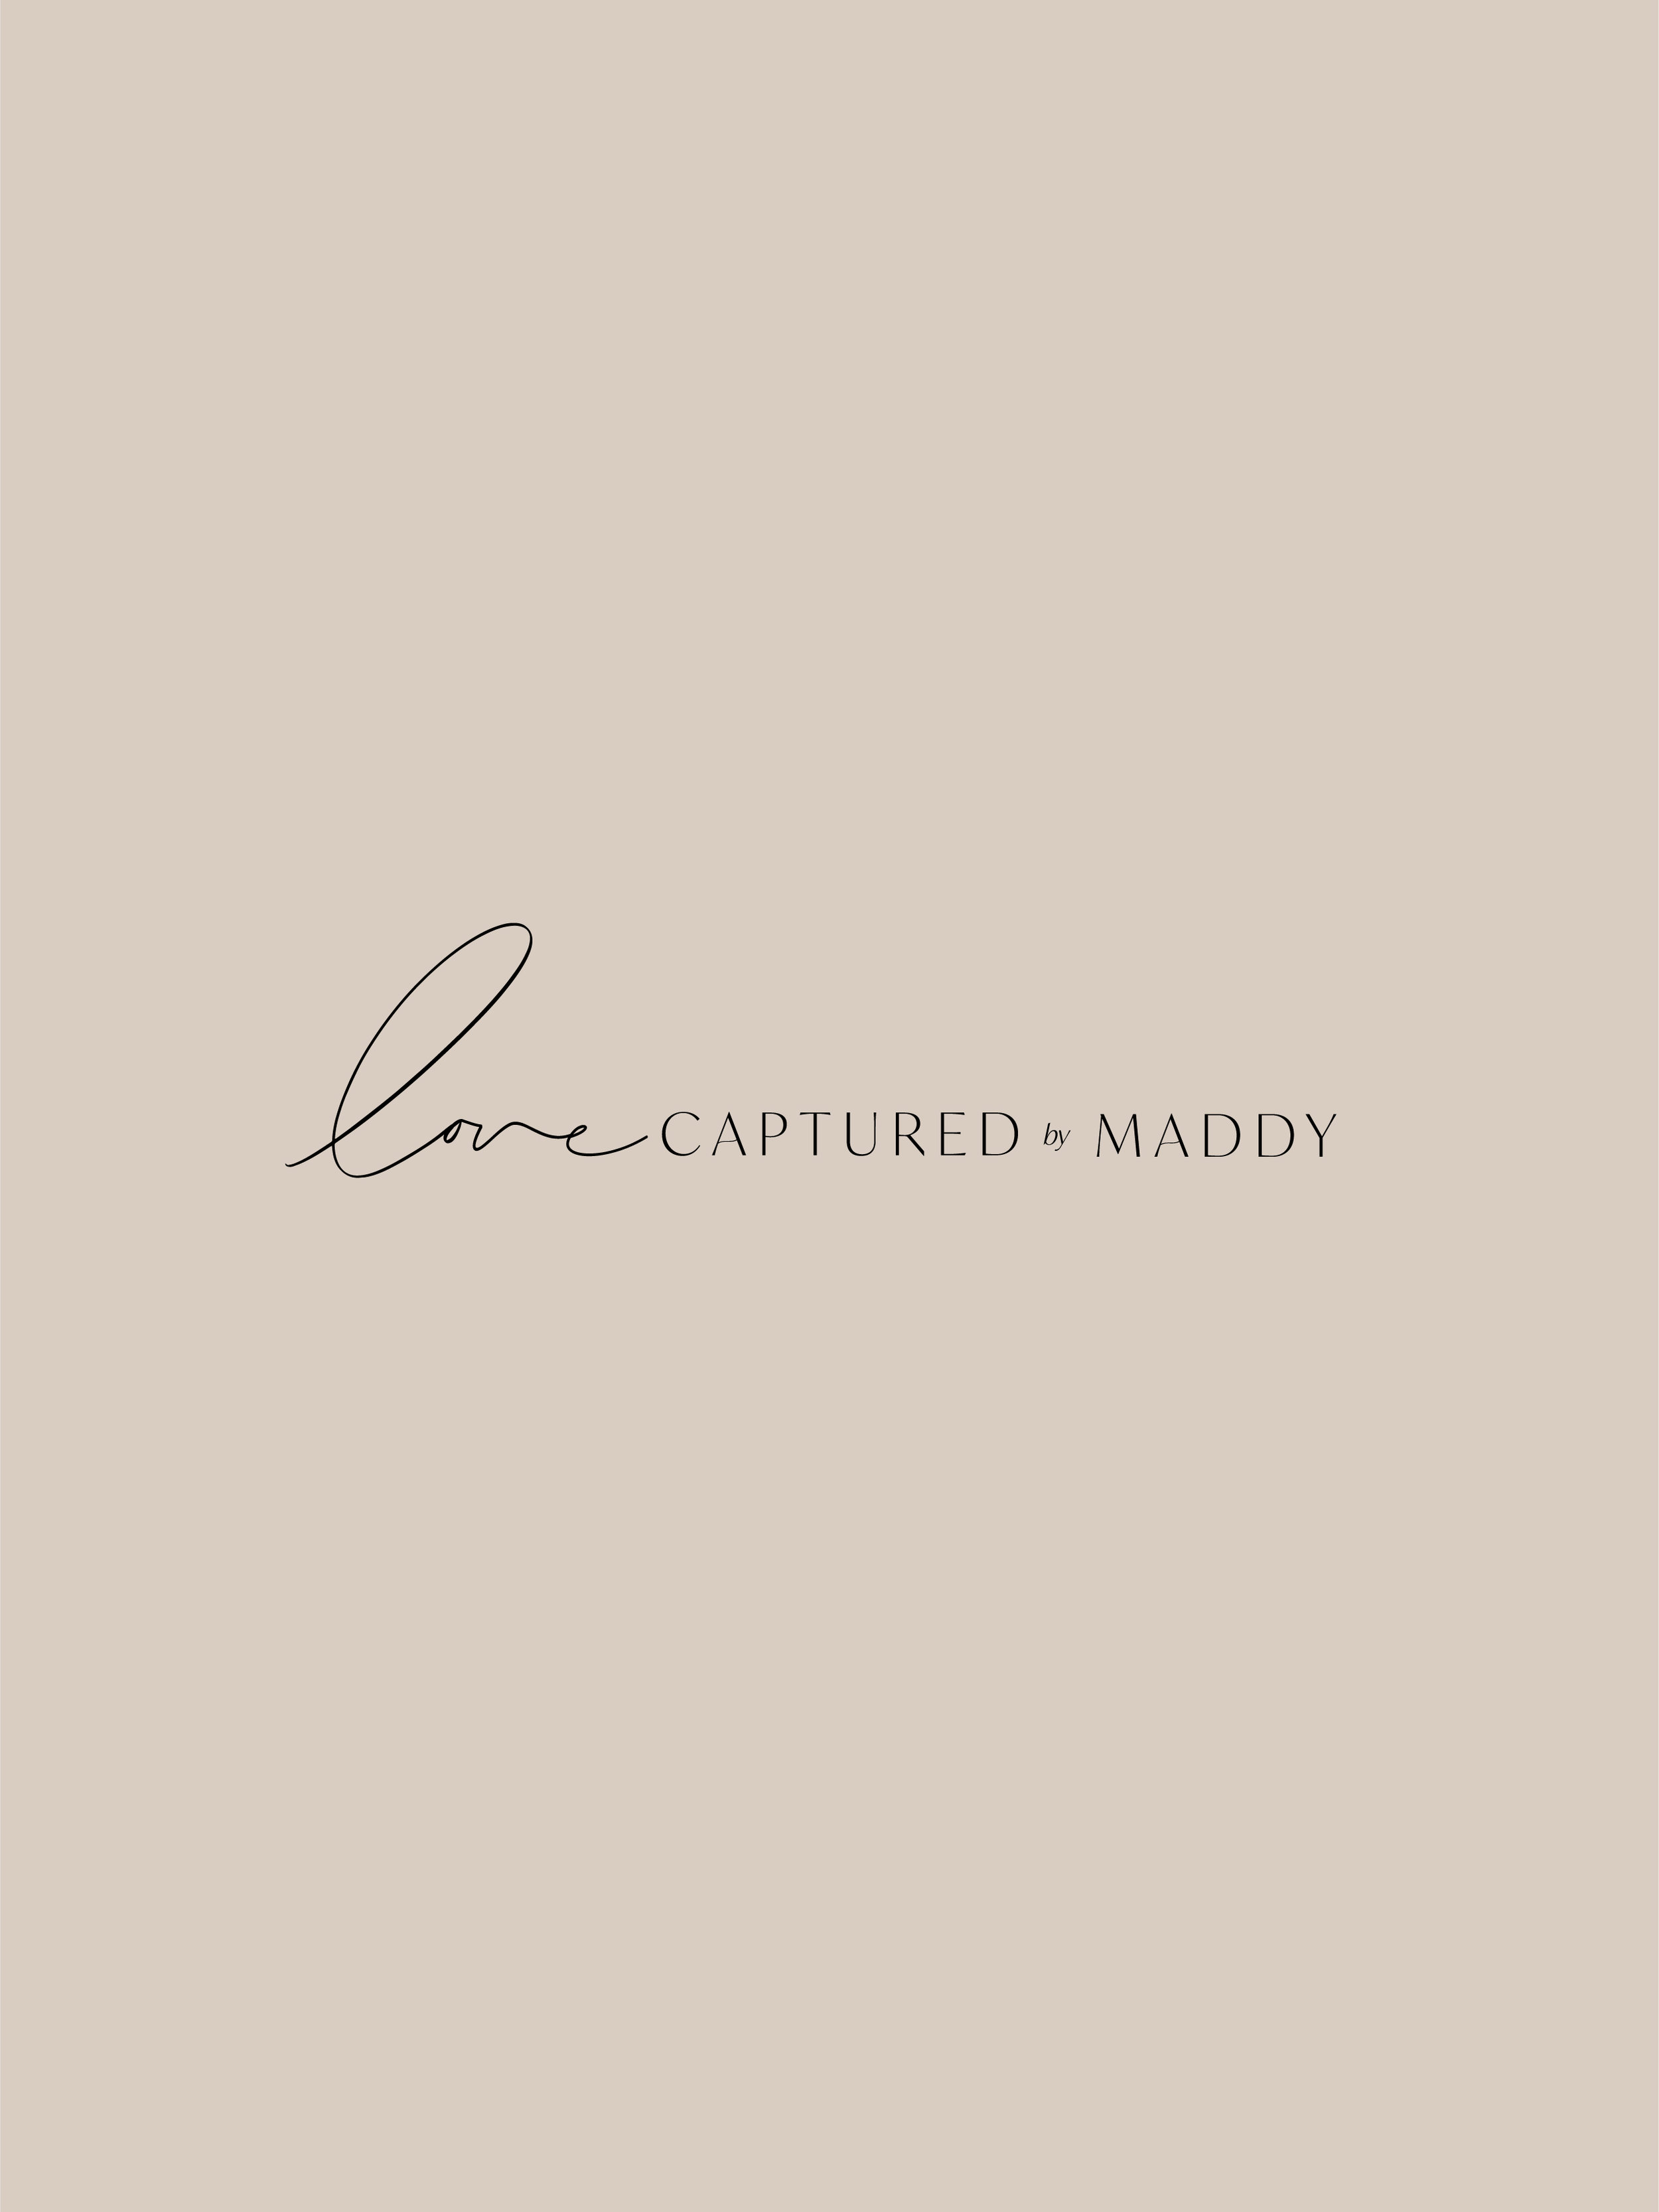 Love Captured by Maddy alternate logo - by January Made Design